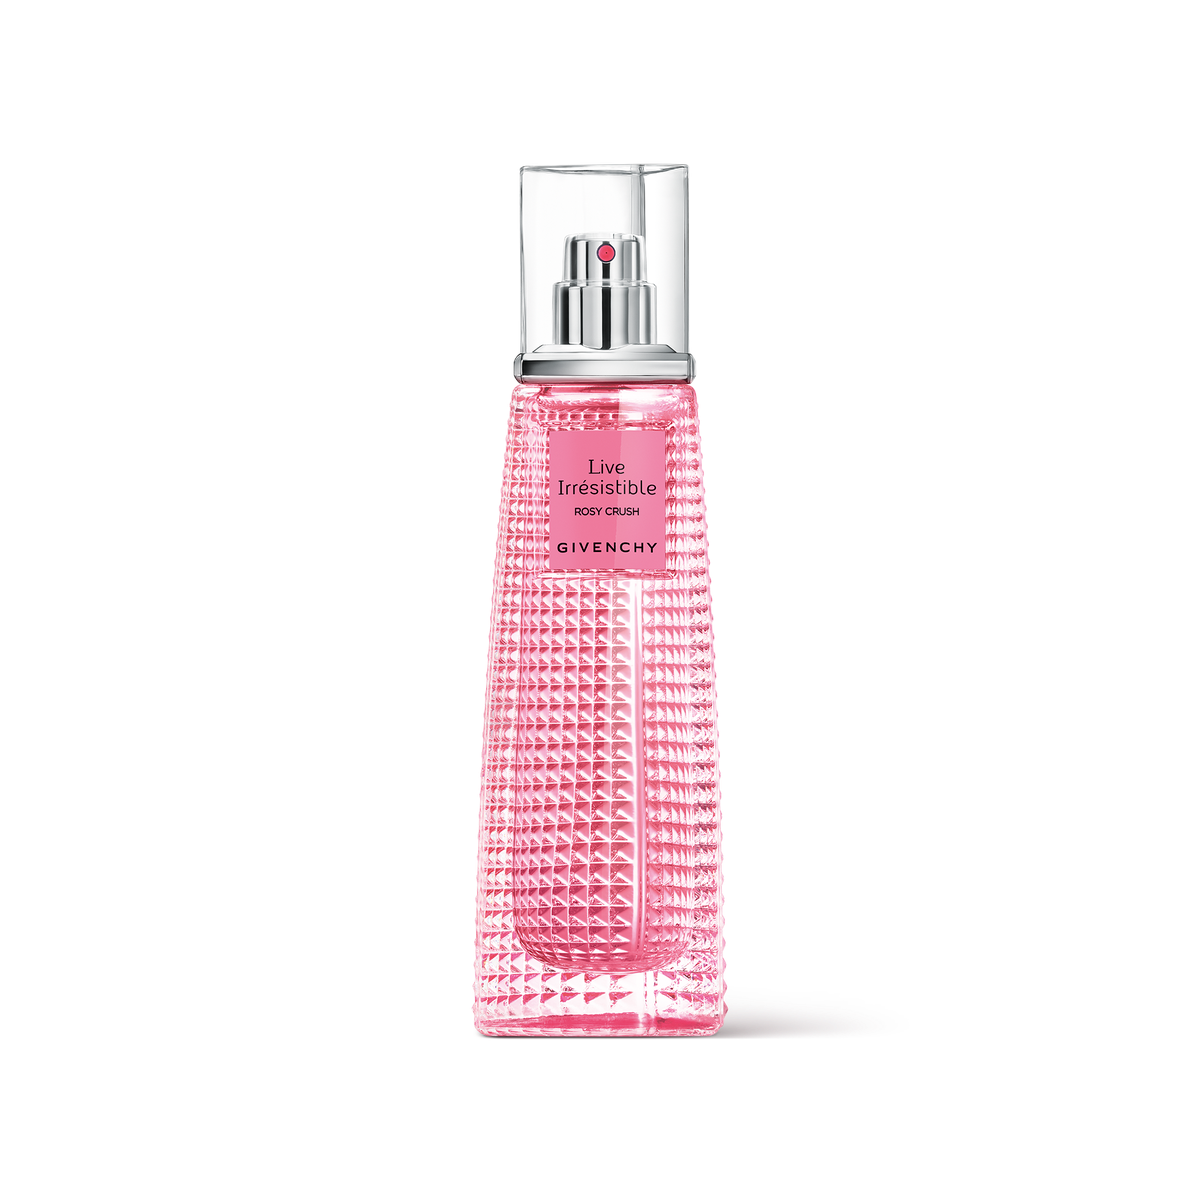 Live Irresistible Rosy Crush Givenchy